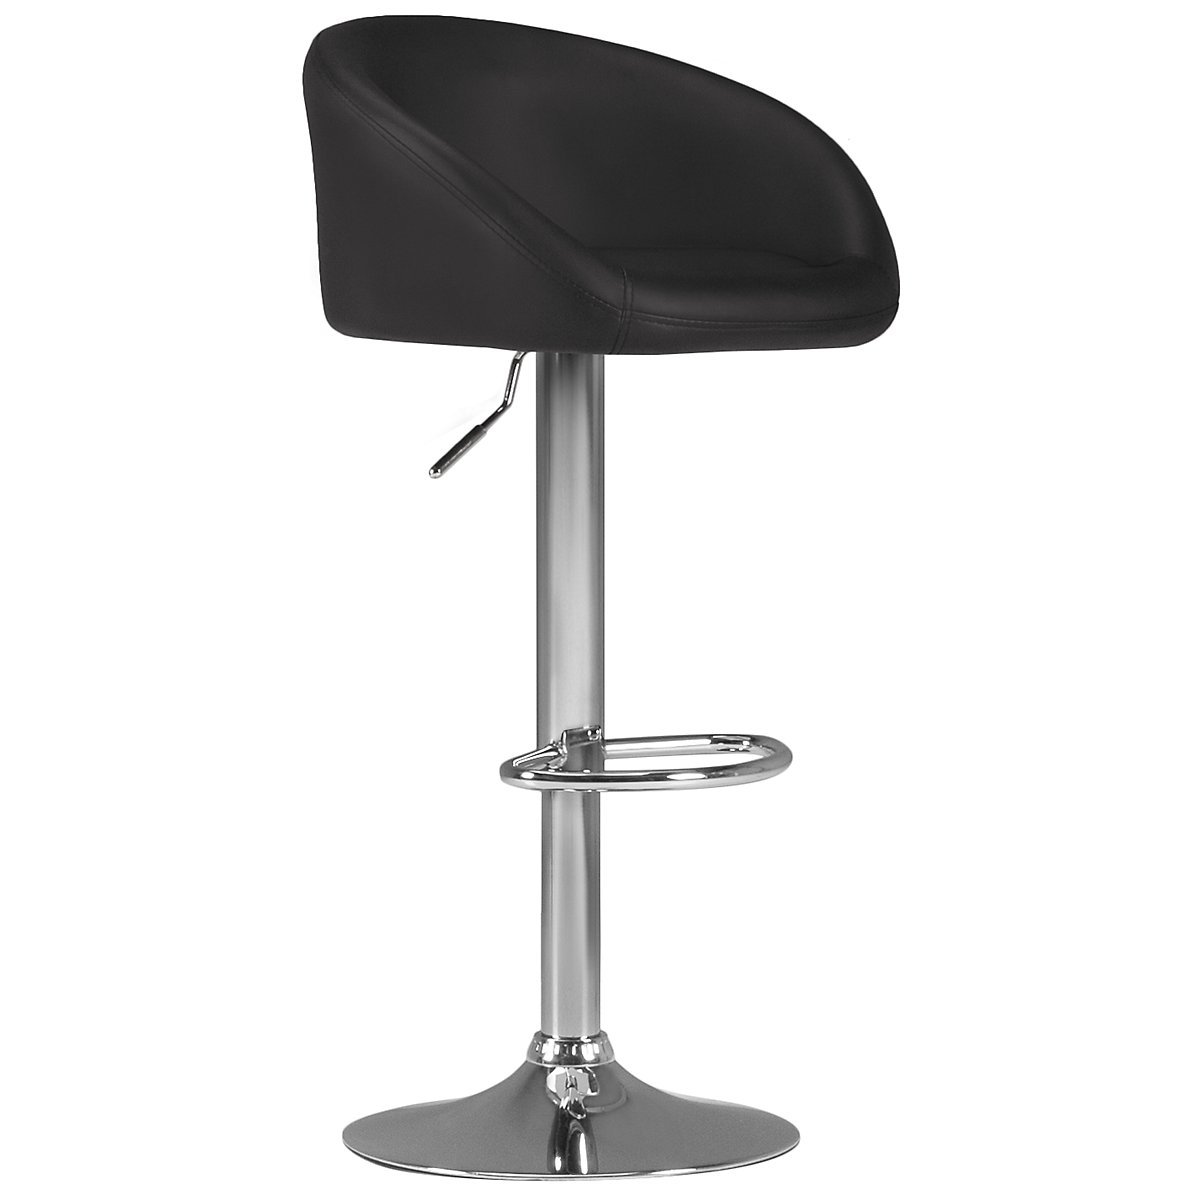 Dayton Black Upholstered Adjustable Stool